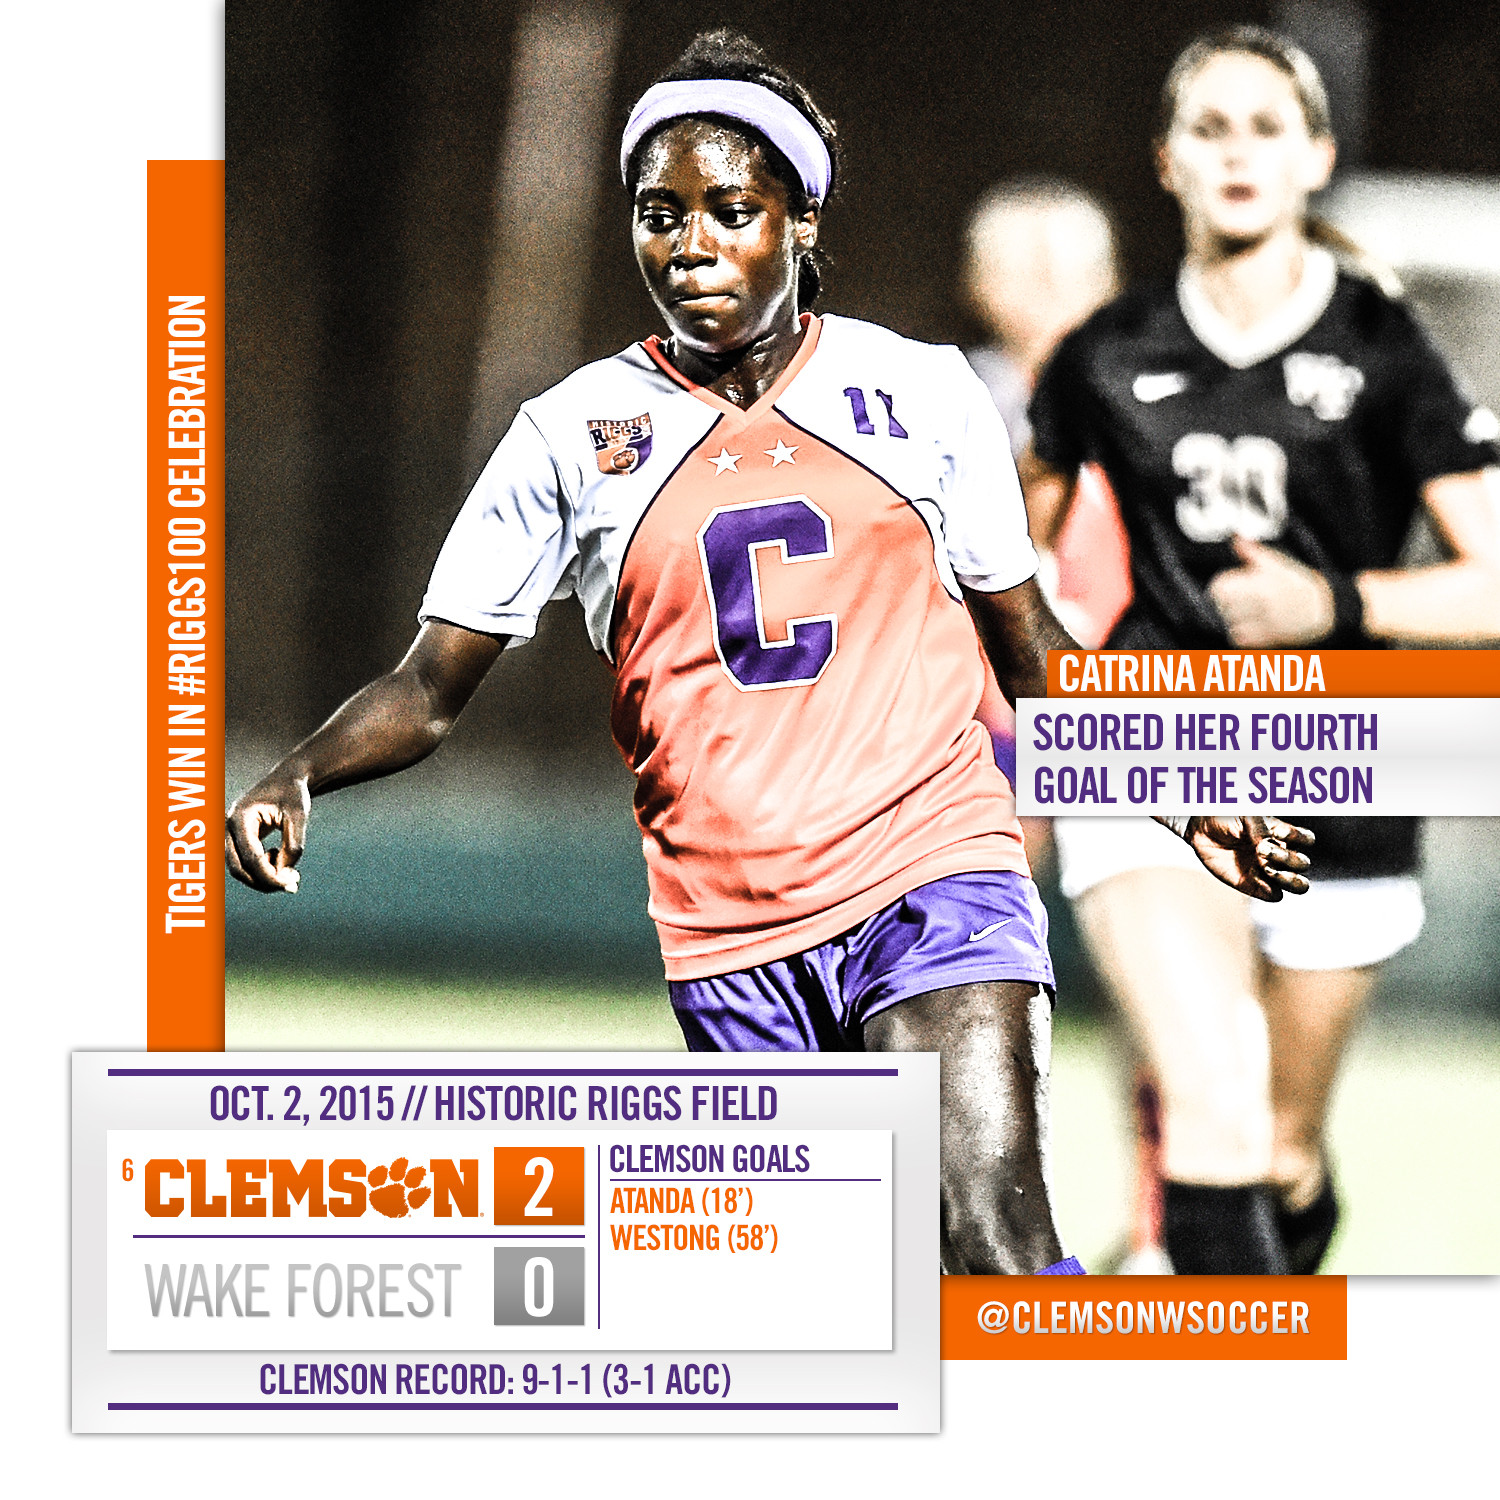 No. 6 Clemson Blanks Wake Forest in #Riggs100 Game Friday